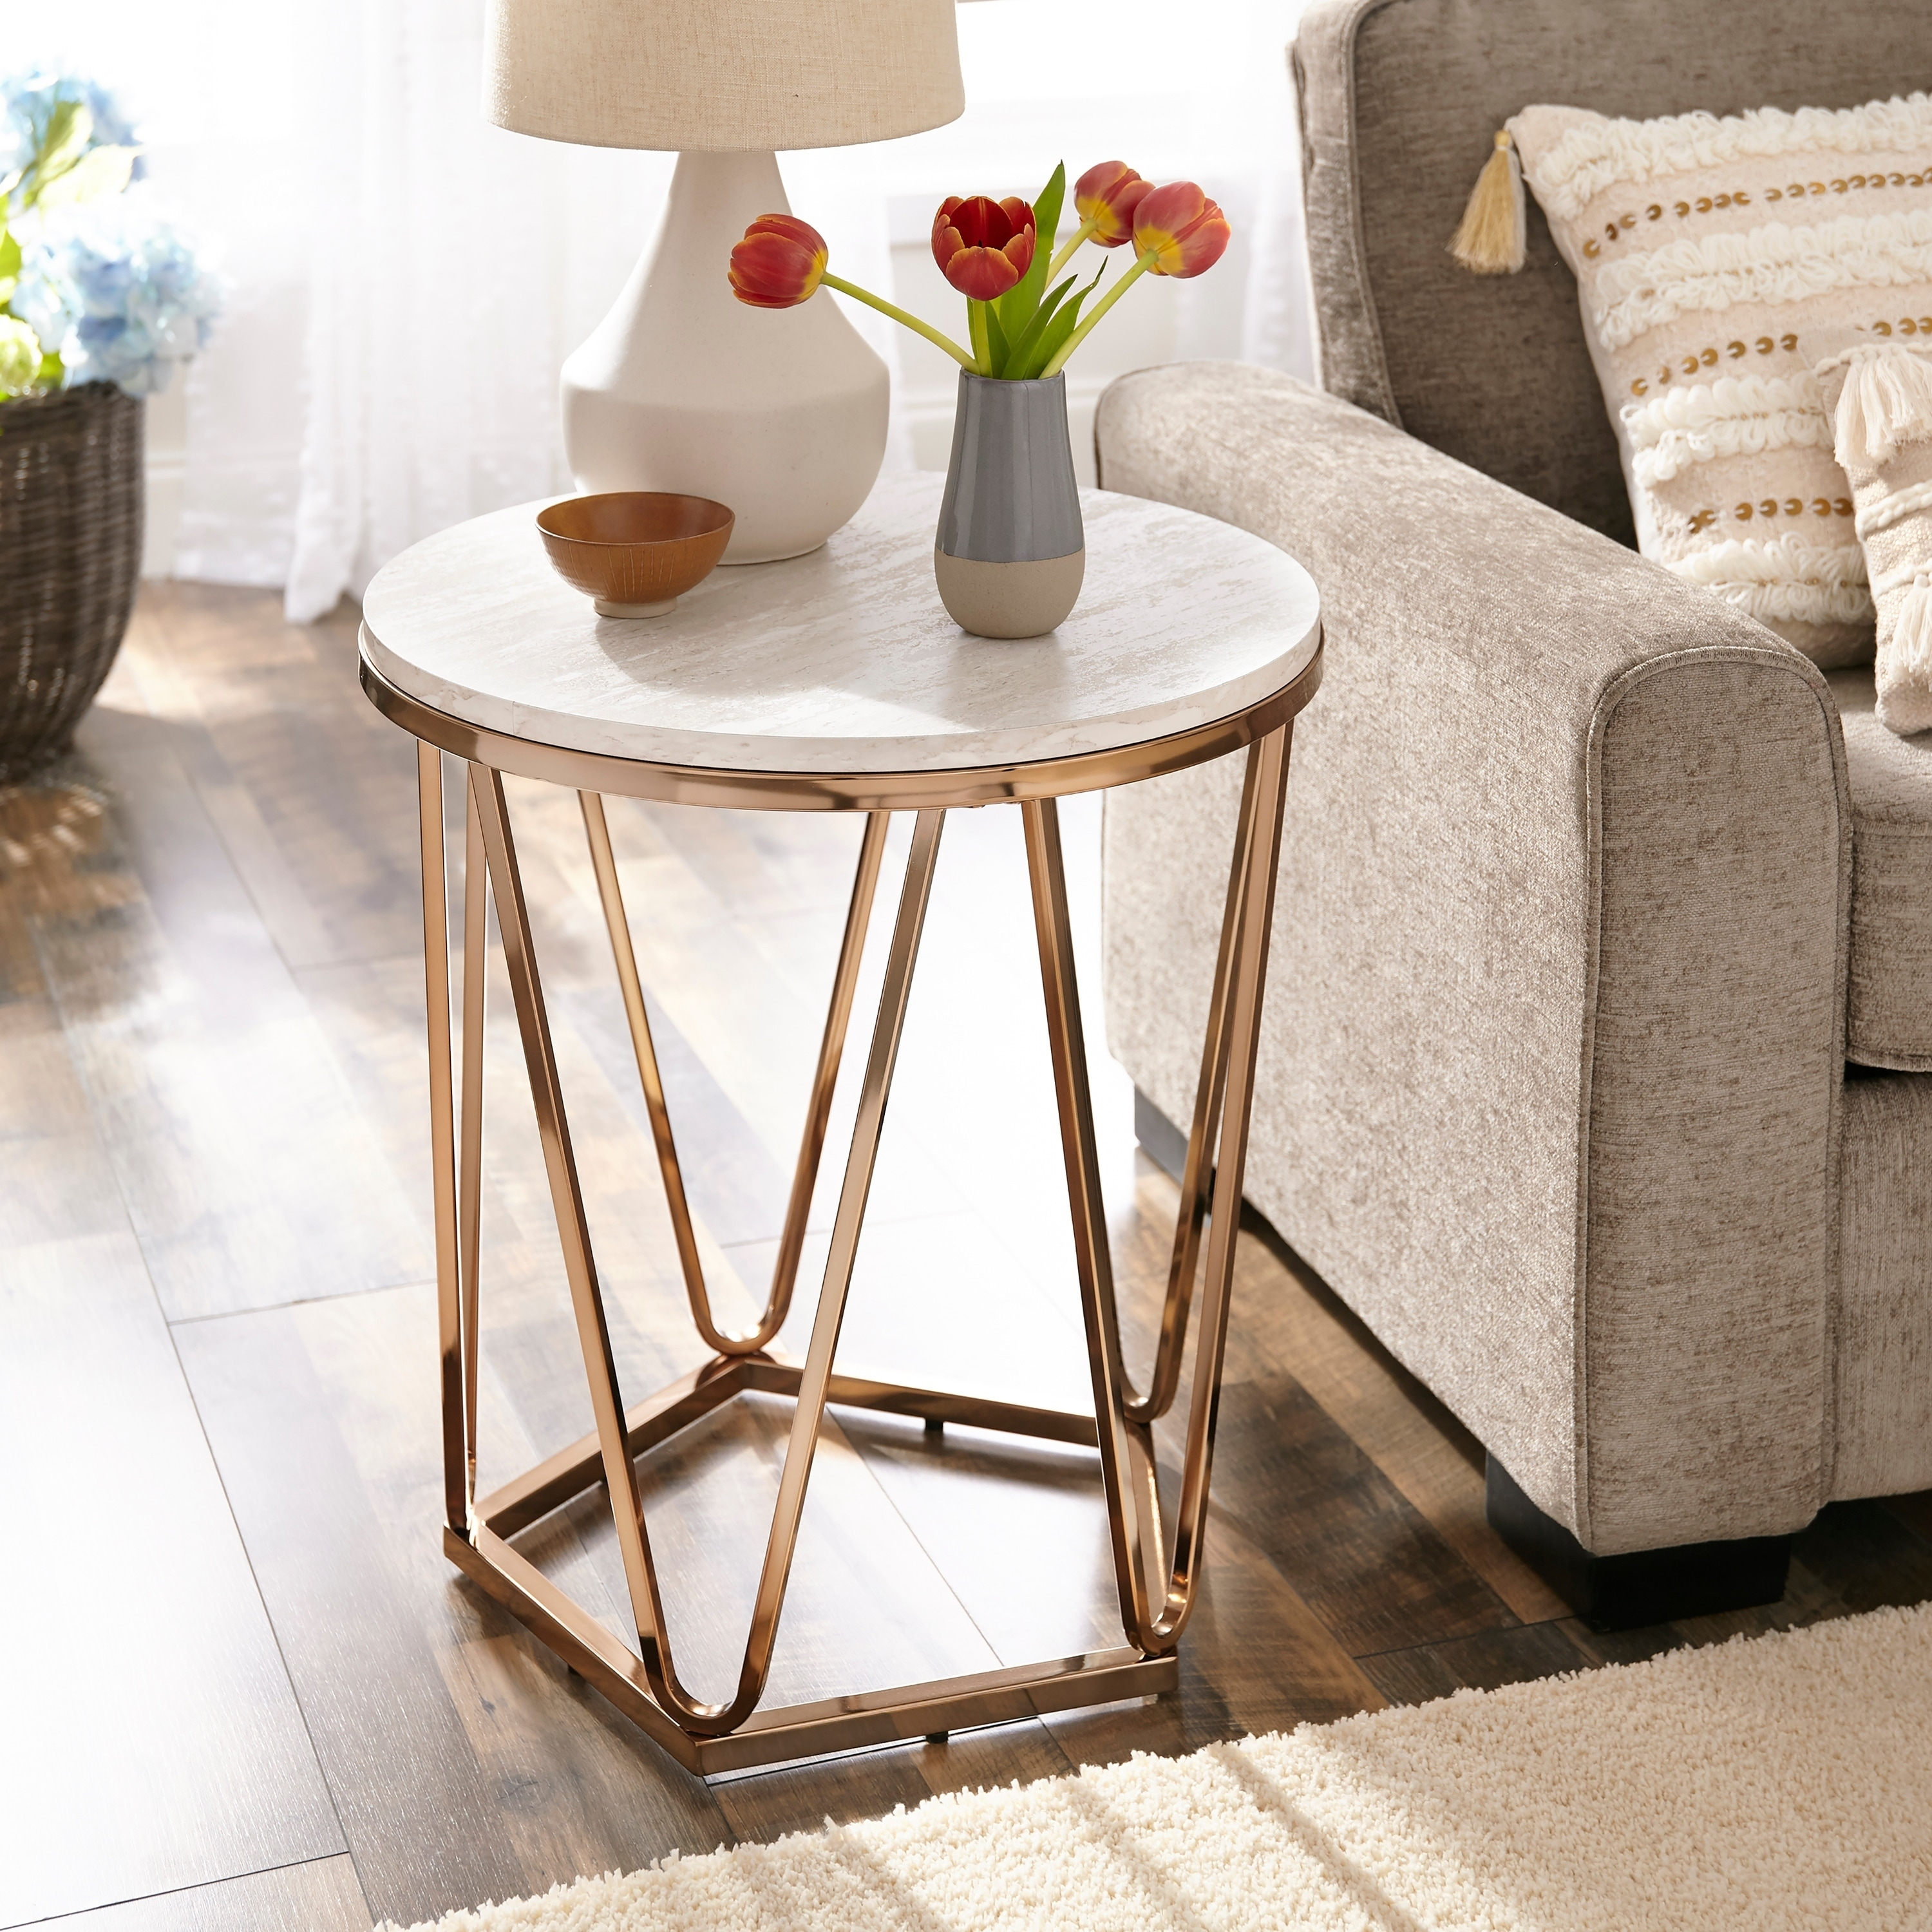 Harper Blvd Lola Faux Stone Round Coffee Table Free Shipping Today 24142924